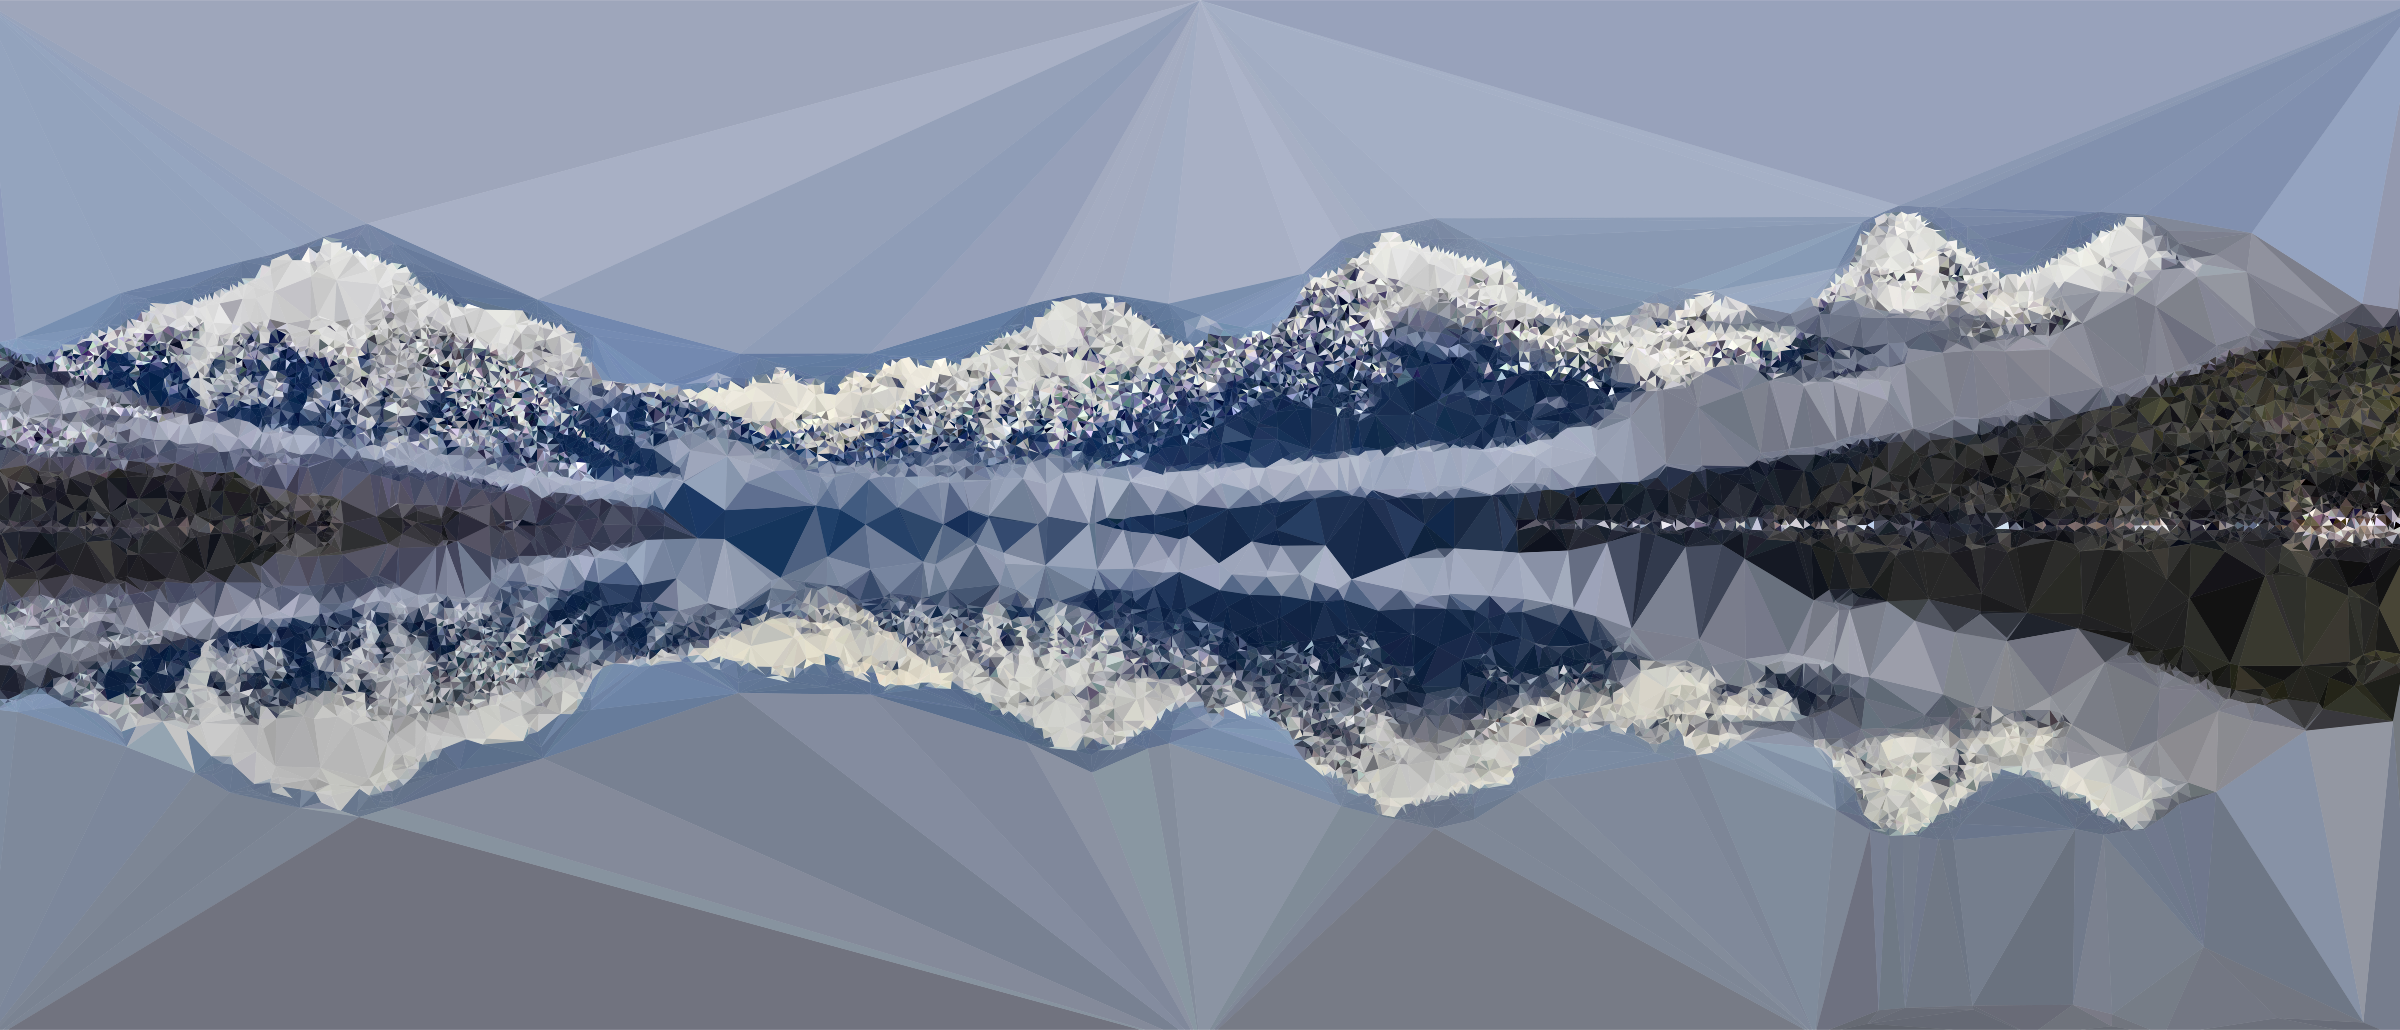 Low Poly Snow Capped Mountains Lake by GDJ